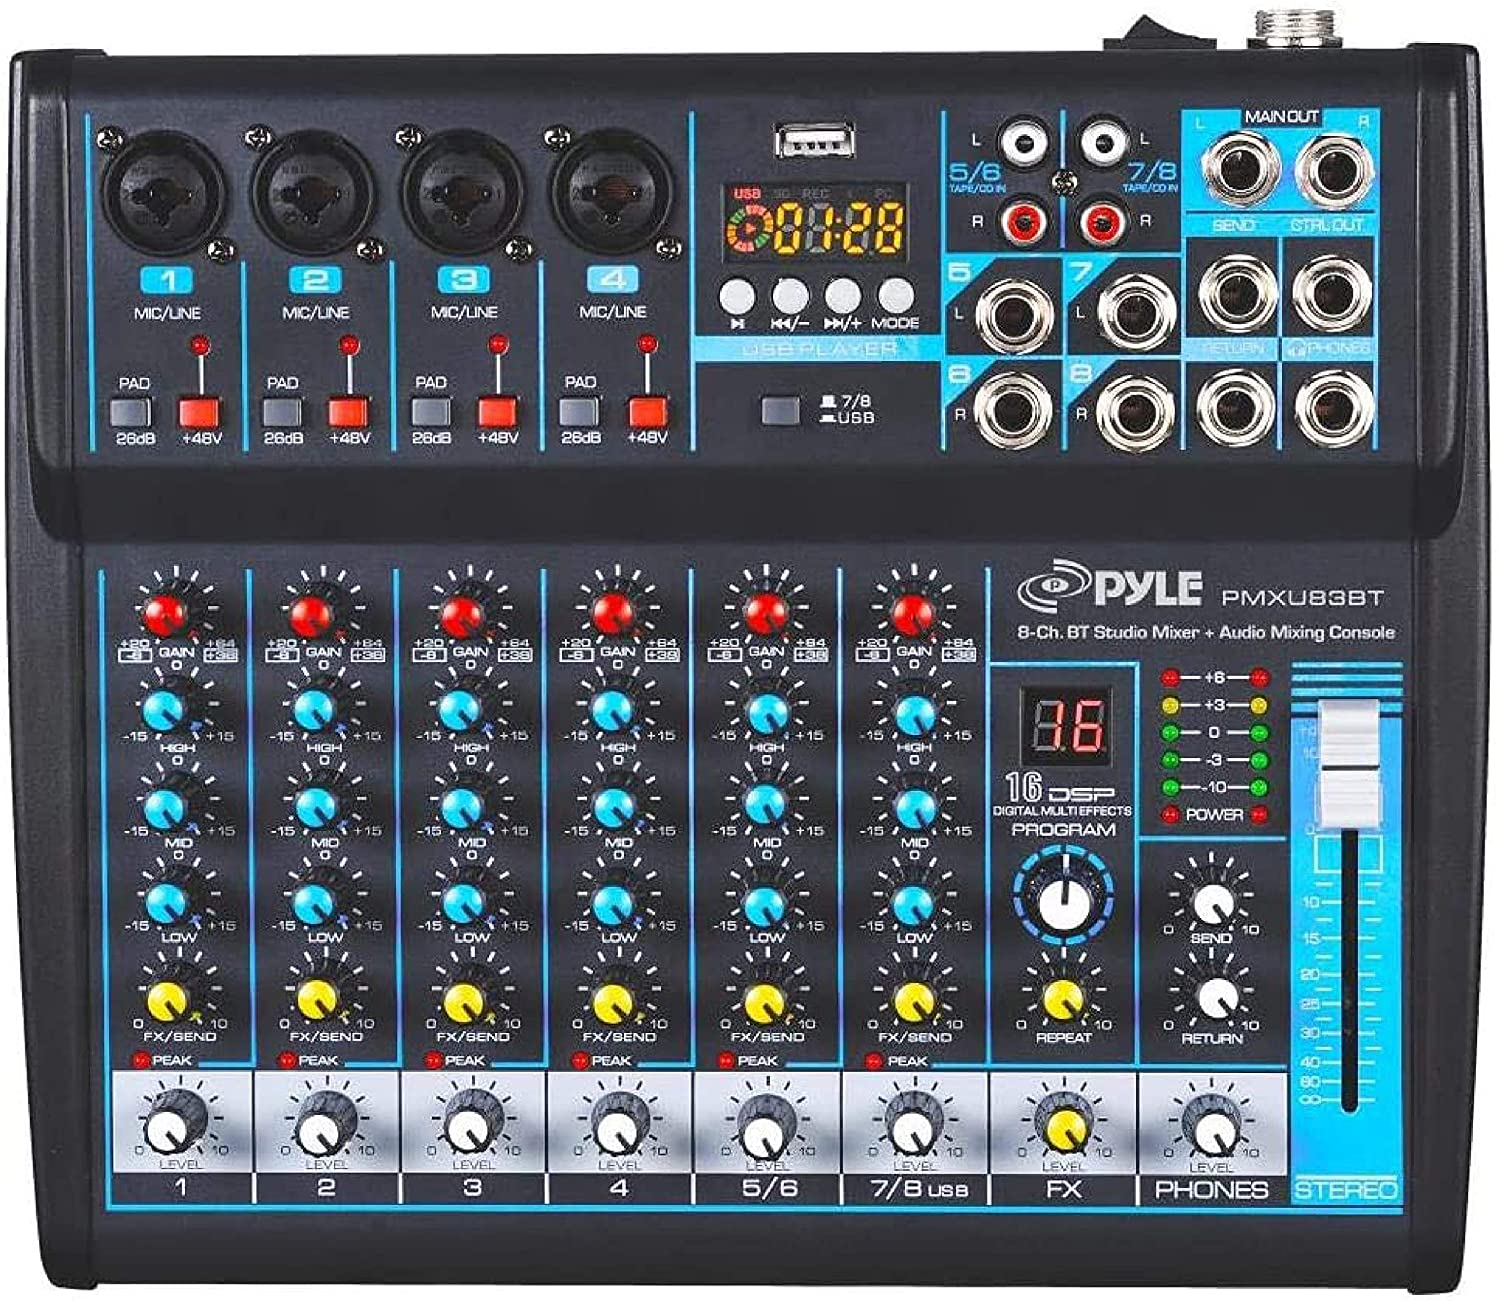 91jpZmLFWL. AC SL1500 Best Mixer for Streaming in [year] - Top 5 Products and Reviews